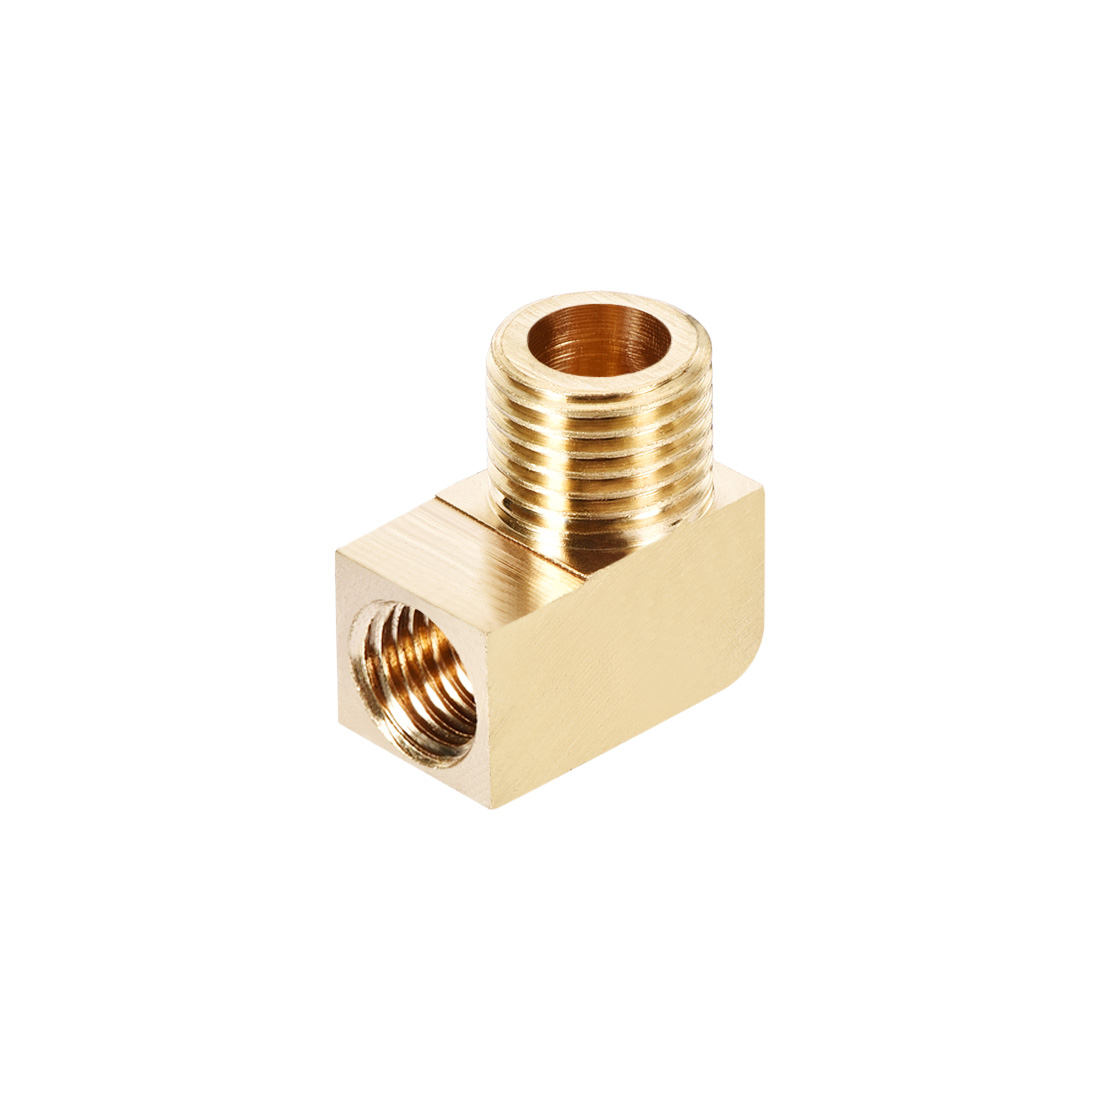 Brass Pipe Fitting 90 Degree Barstock Street Elbow G1/4 Male x M10 Female